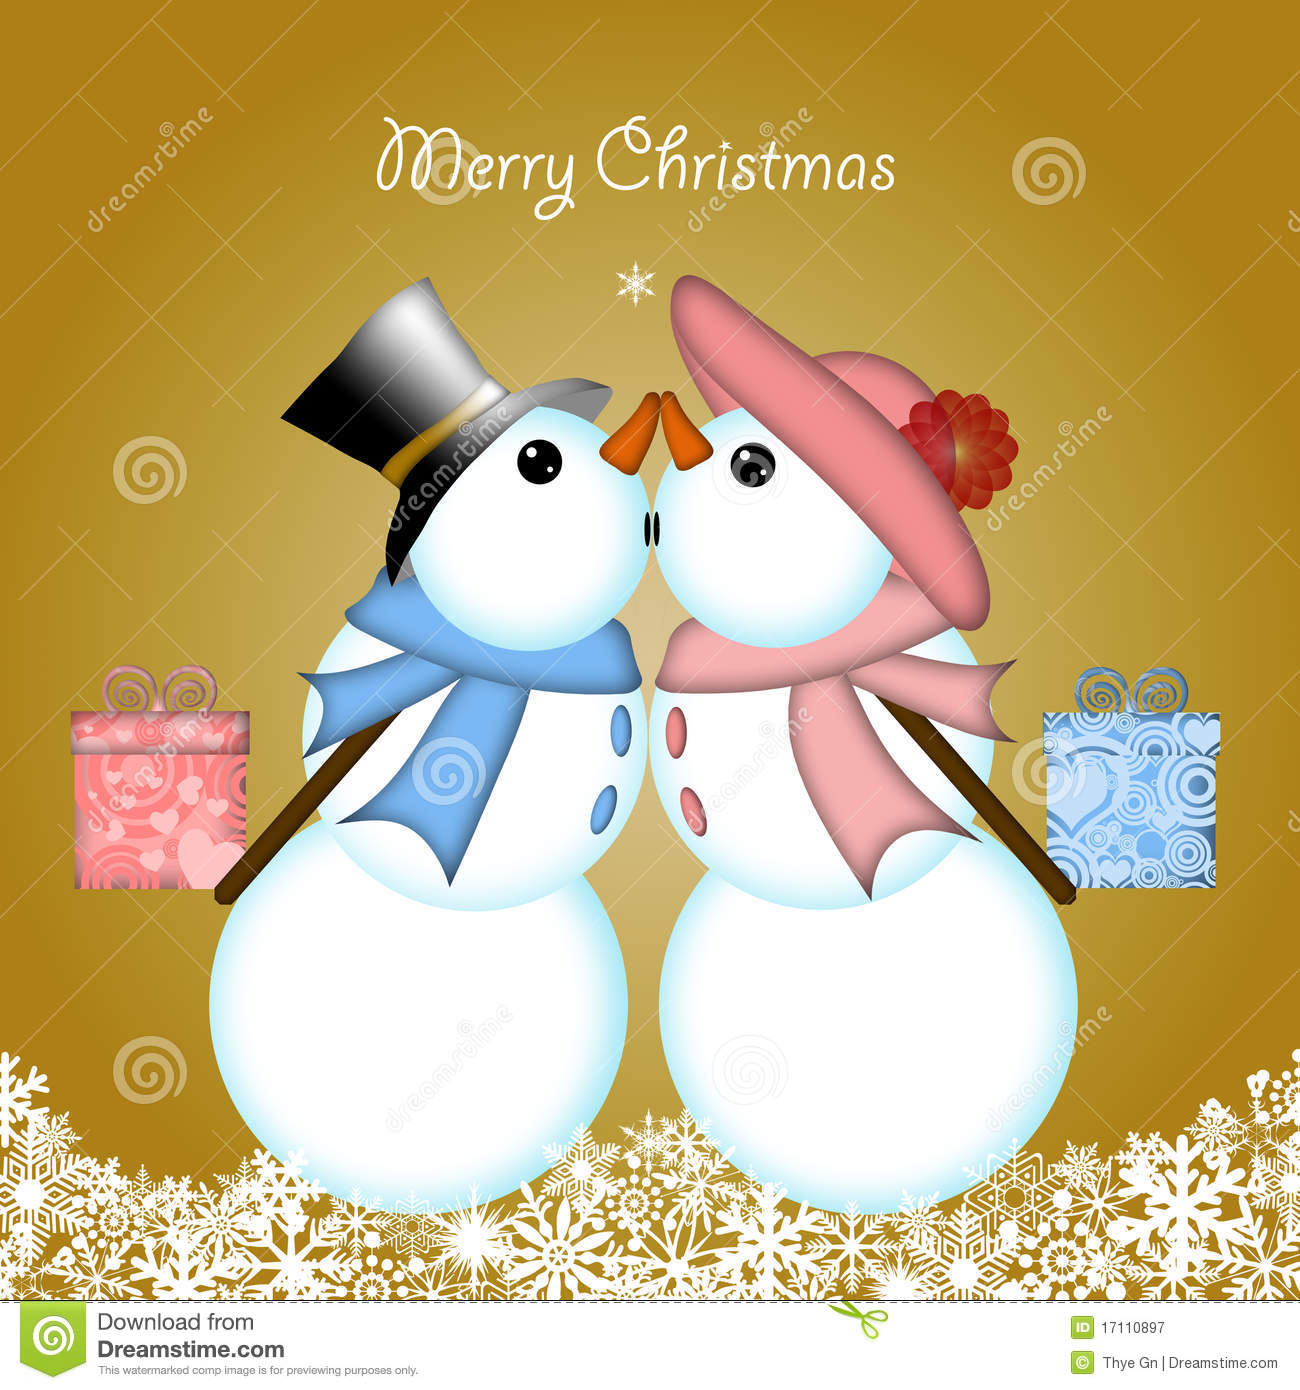 Christmas Kissing Snowman Couple Giving Gifts Royalty Free